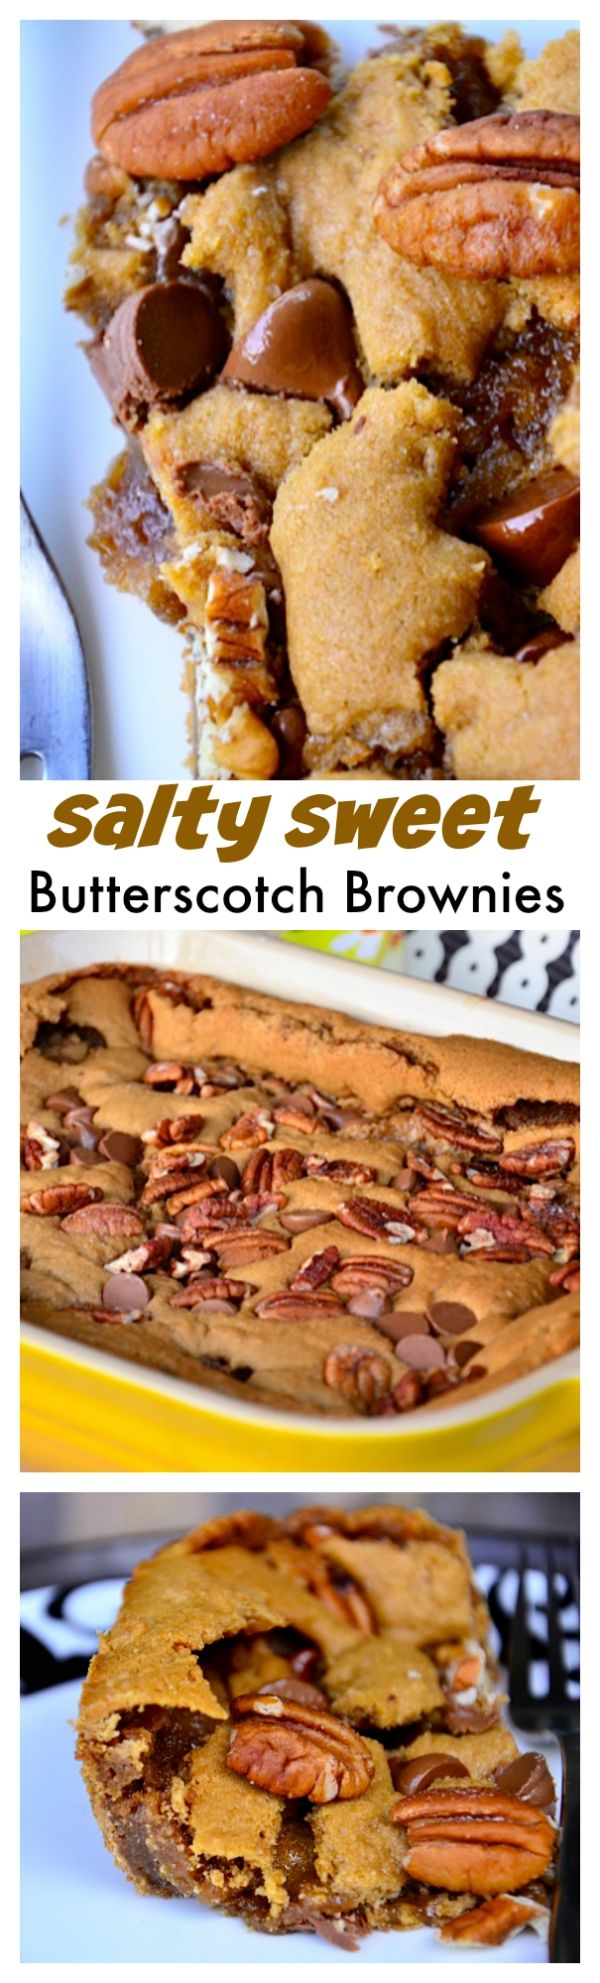 Salty Sweet Butterscotch Brownies | ReluctantEntertainer.com